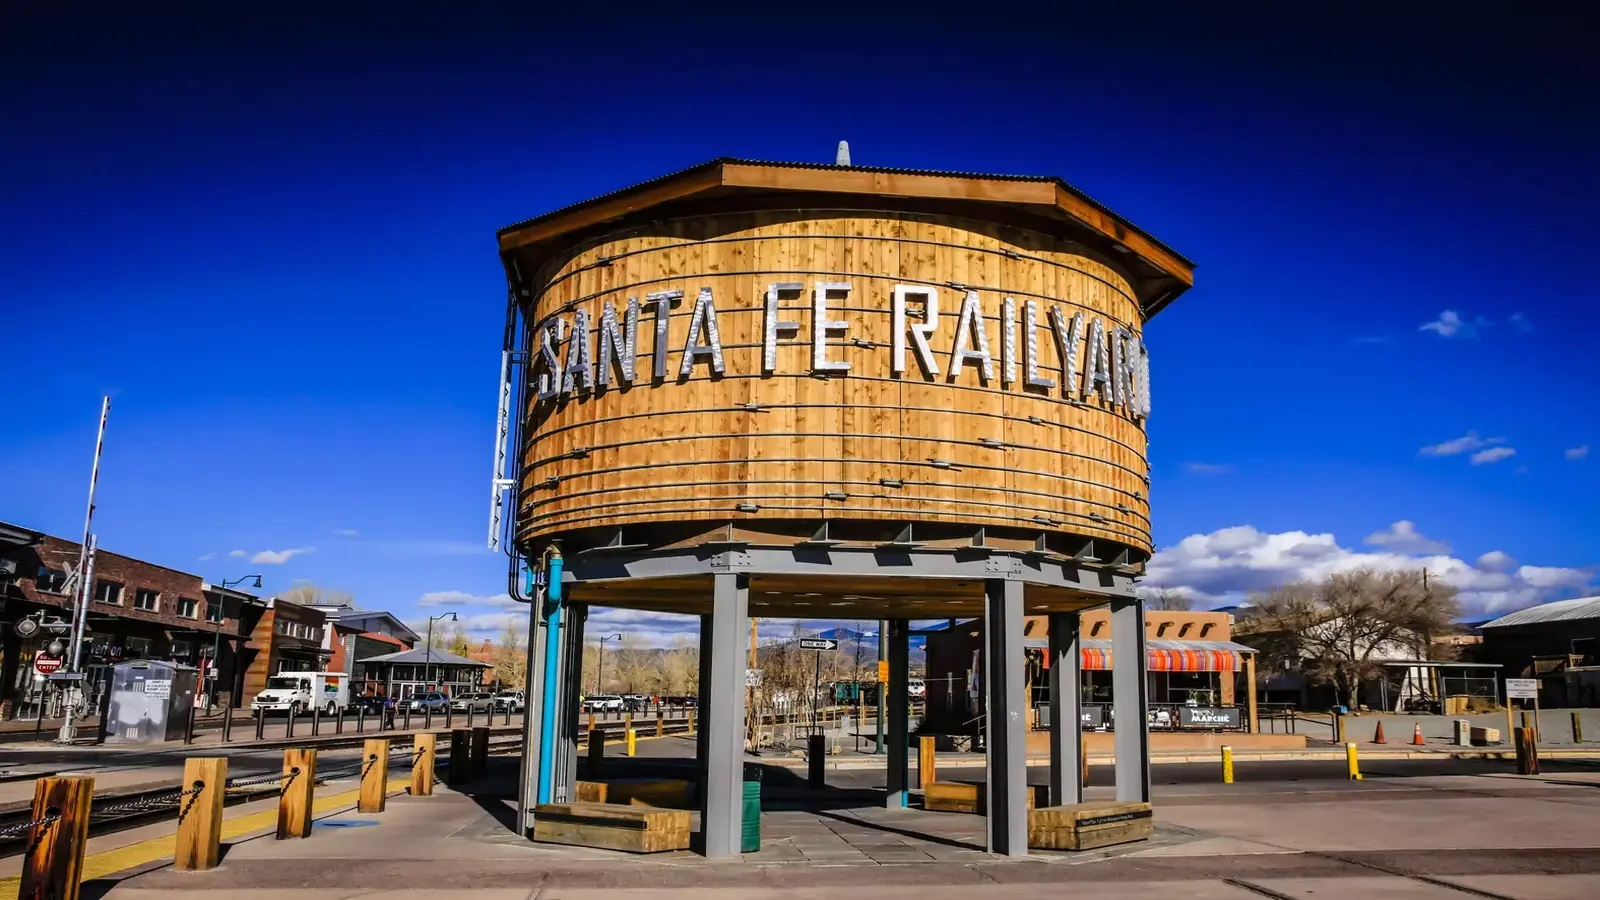 Things to Do in Santa Fe Railyard District, NM